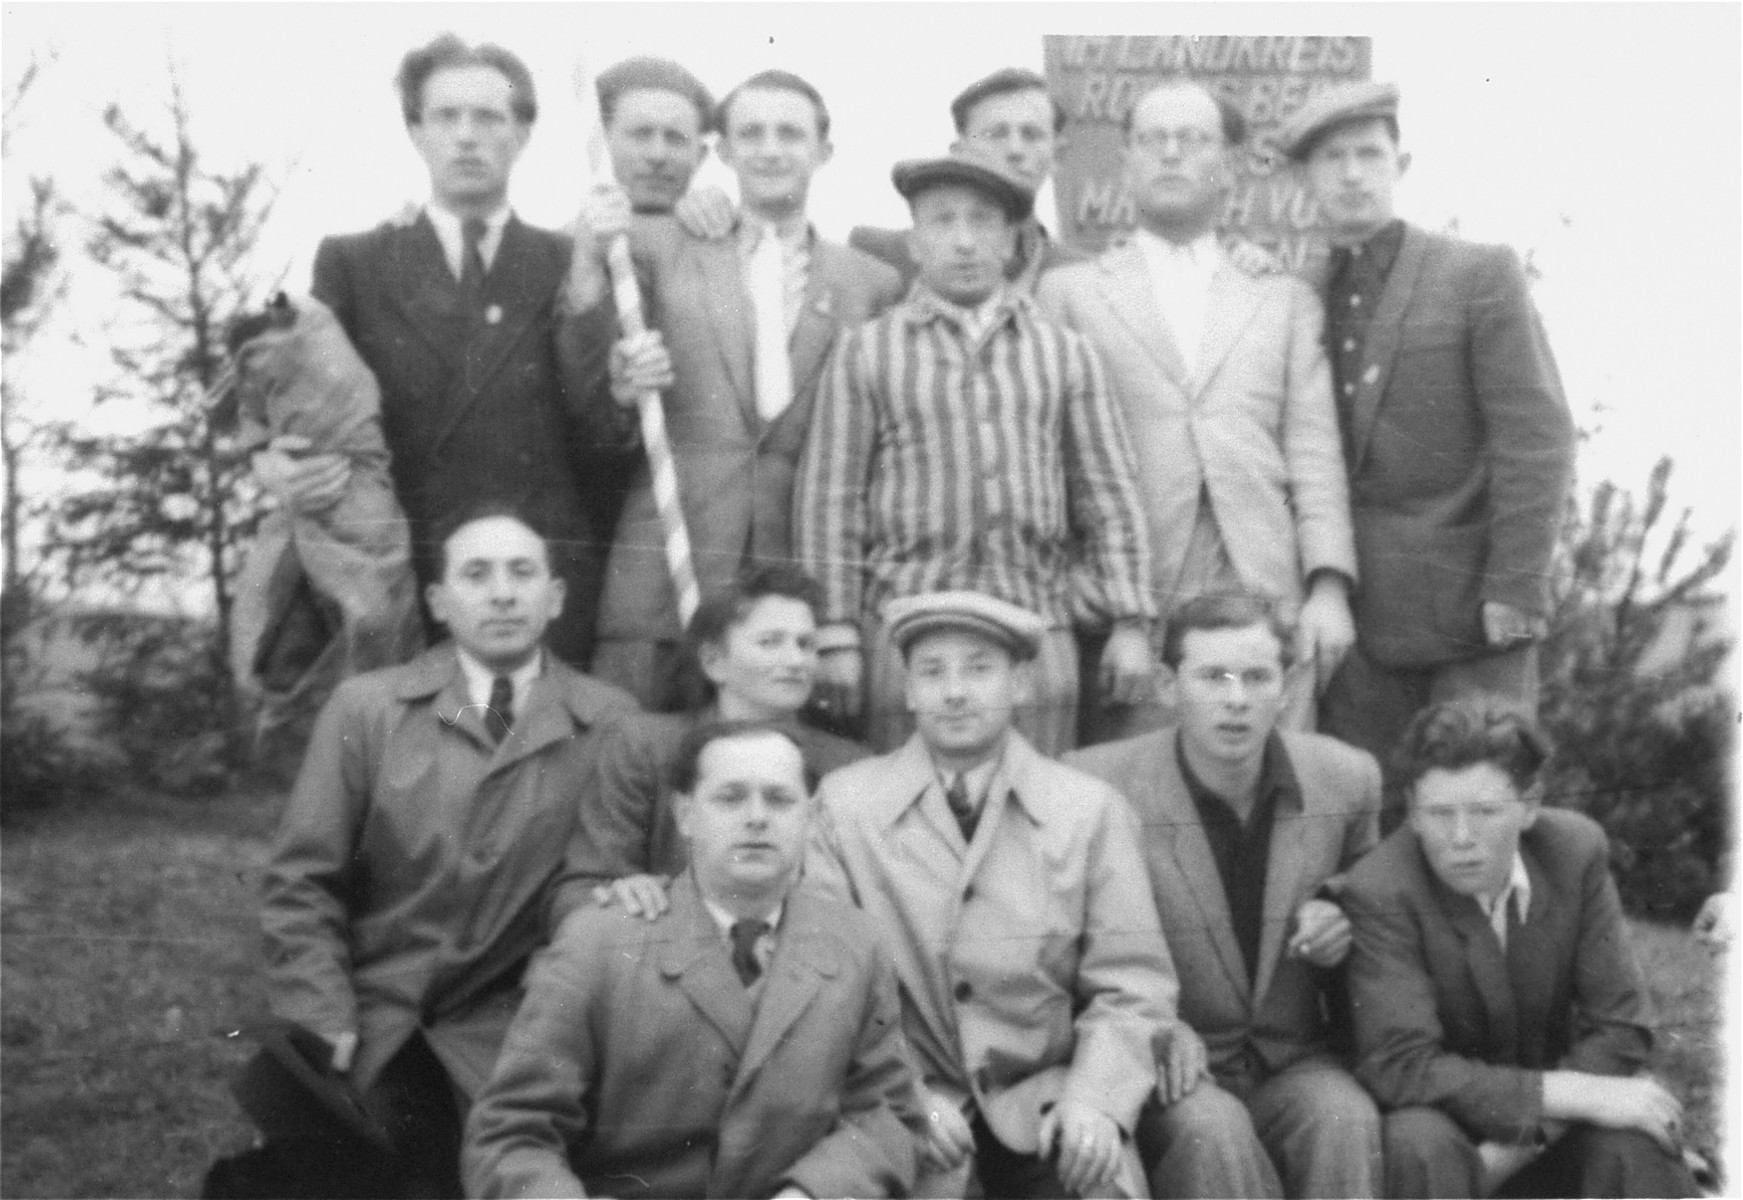 Jewish men, one in concentration camp uniform gather in the Pocking displaced persons camp.   Alexander Contract (third from left, back row) holds the Israeli flag.